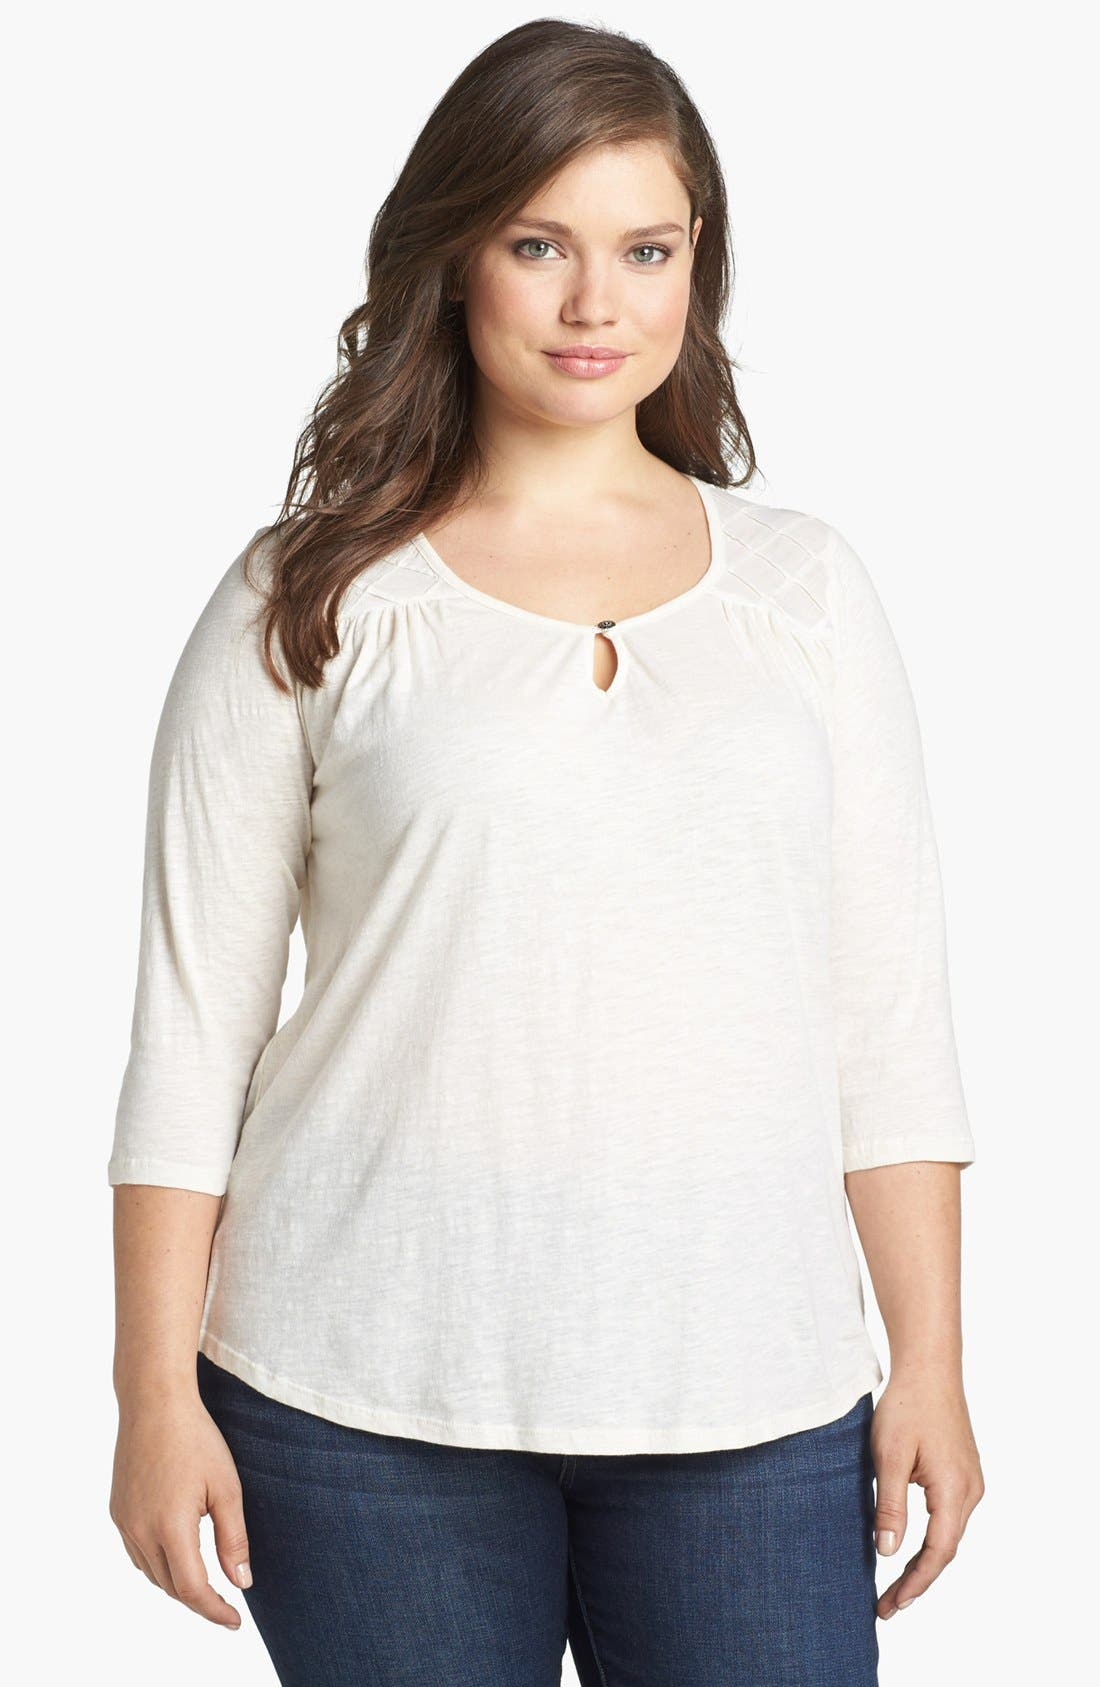 Alternate Image 1 Selected - Lucky Brand 'Elie' Quilted Yoke Top (Plus Size)